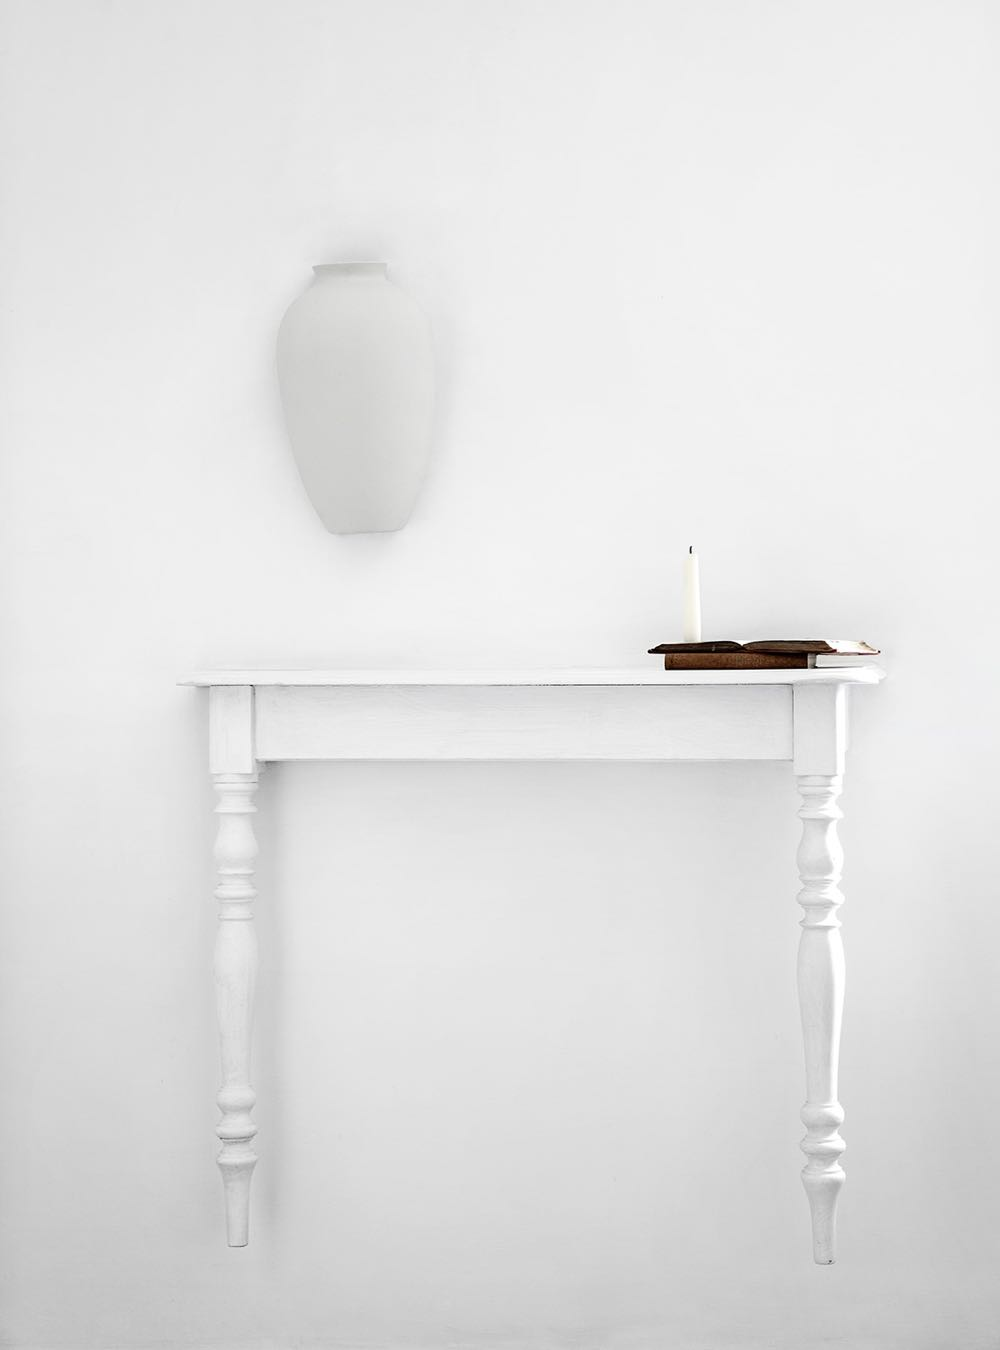 The work of Sofie Lachaert and Luc D'Hanis is nearly always totally restrained and often white. They look at common objects in new ways. Photography by Sharyn Cairns.